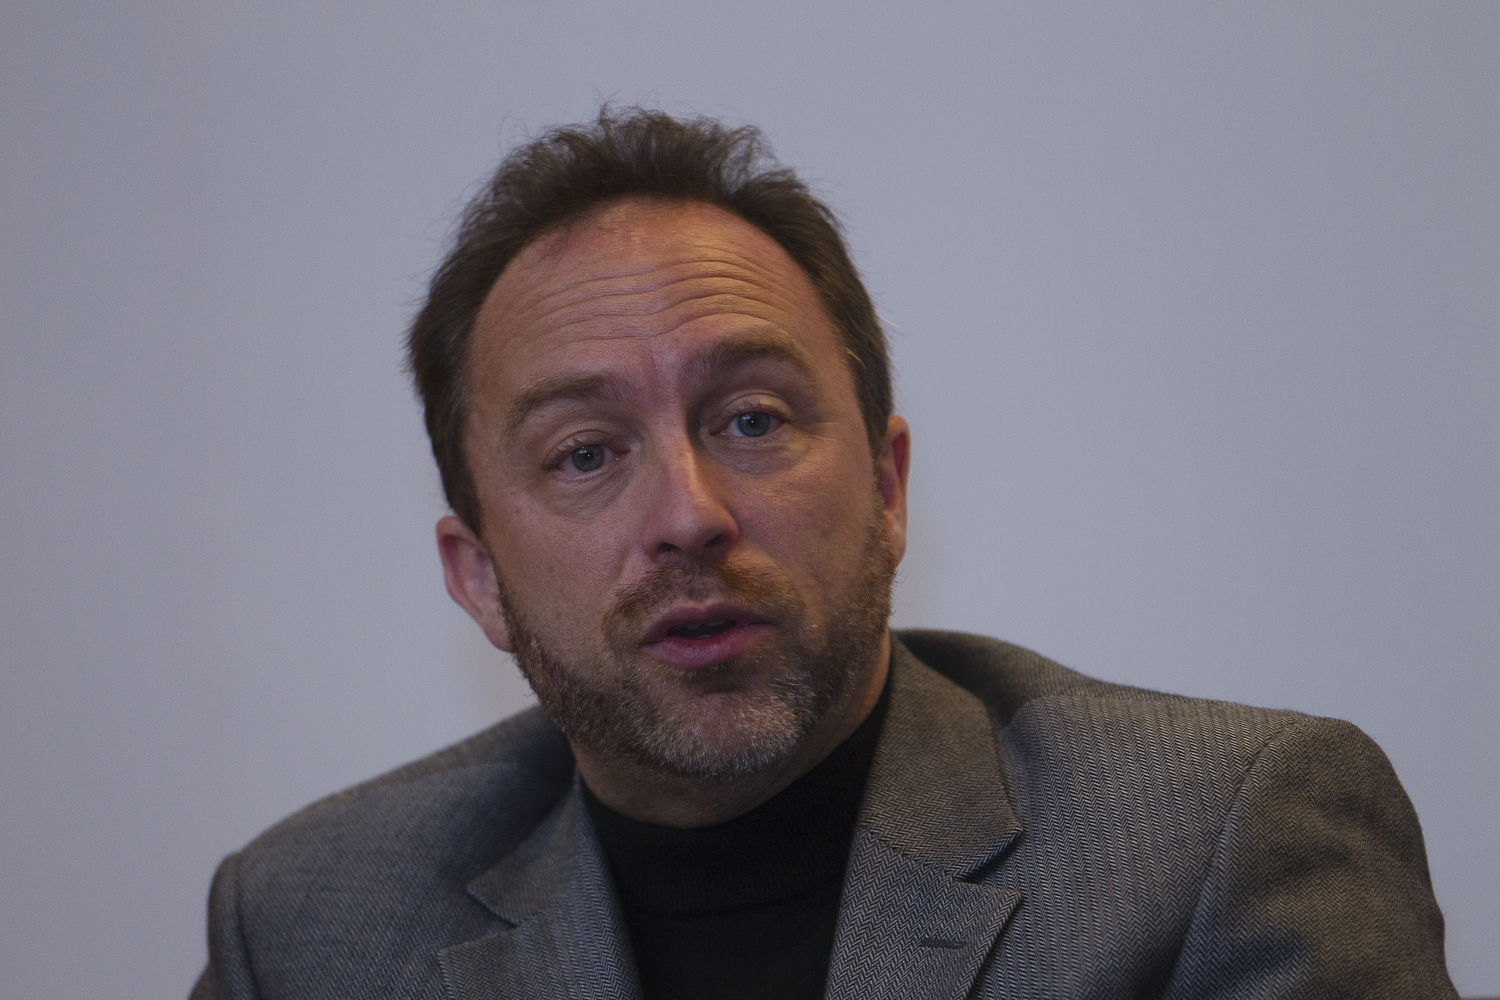 Wikipedia Co-Founder Says Crypto Integration Would be 'Completely Insane' - CoinDesk